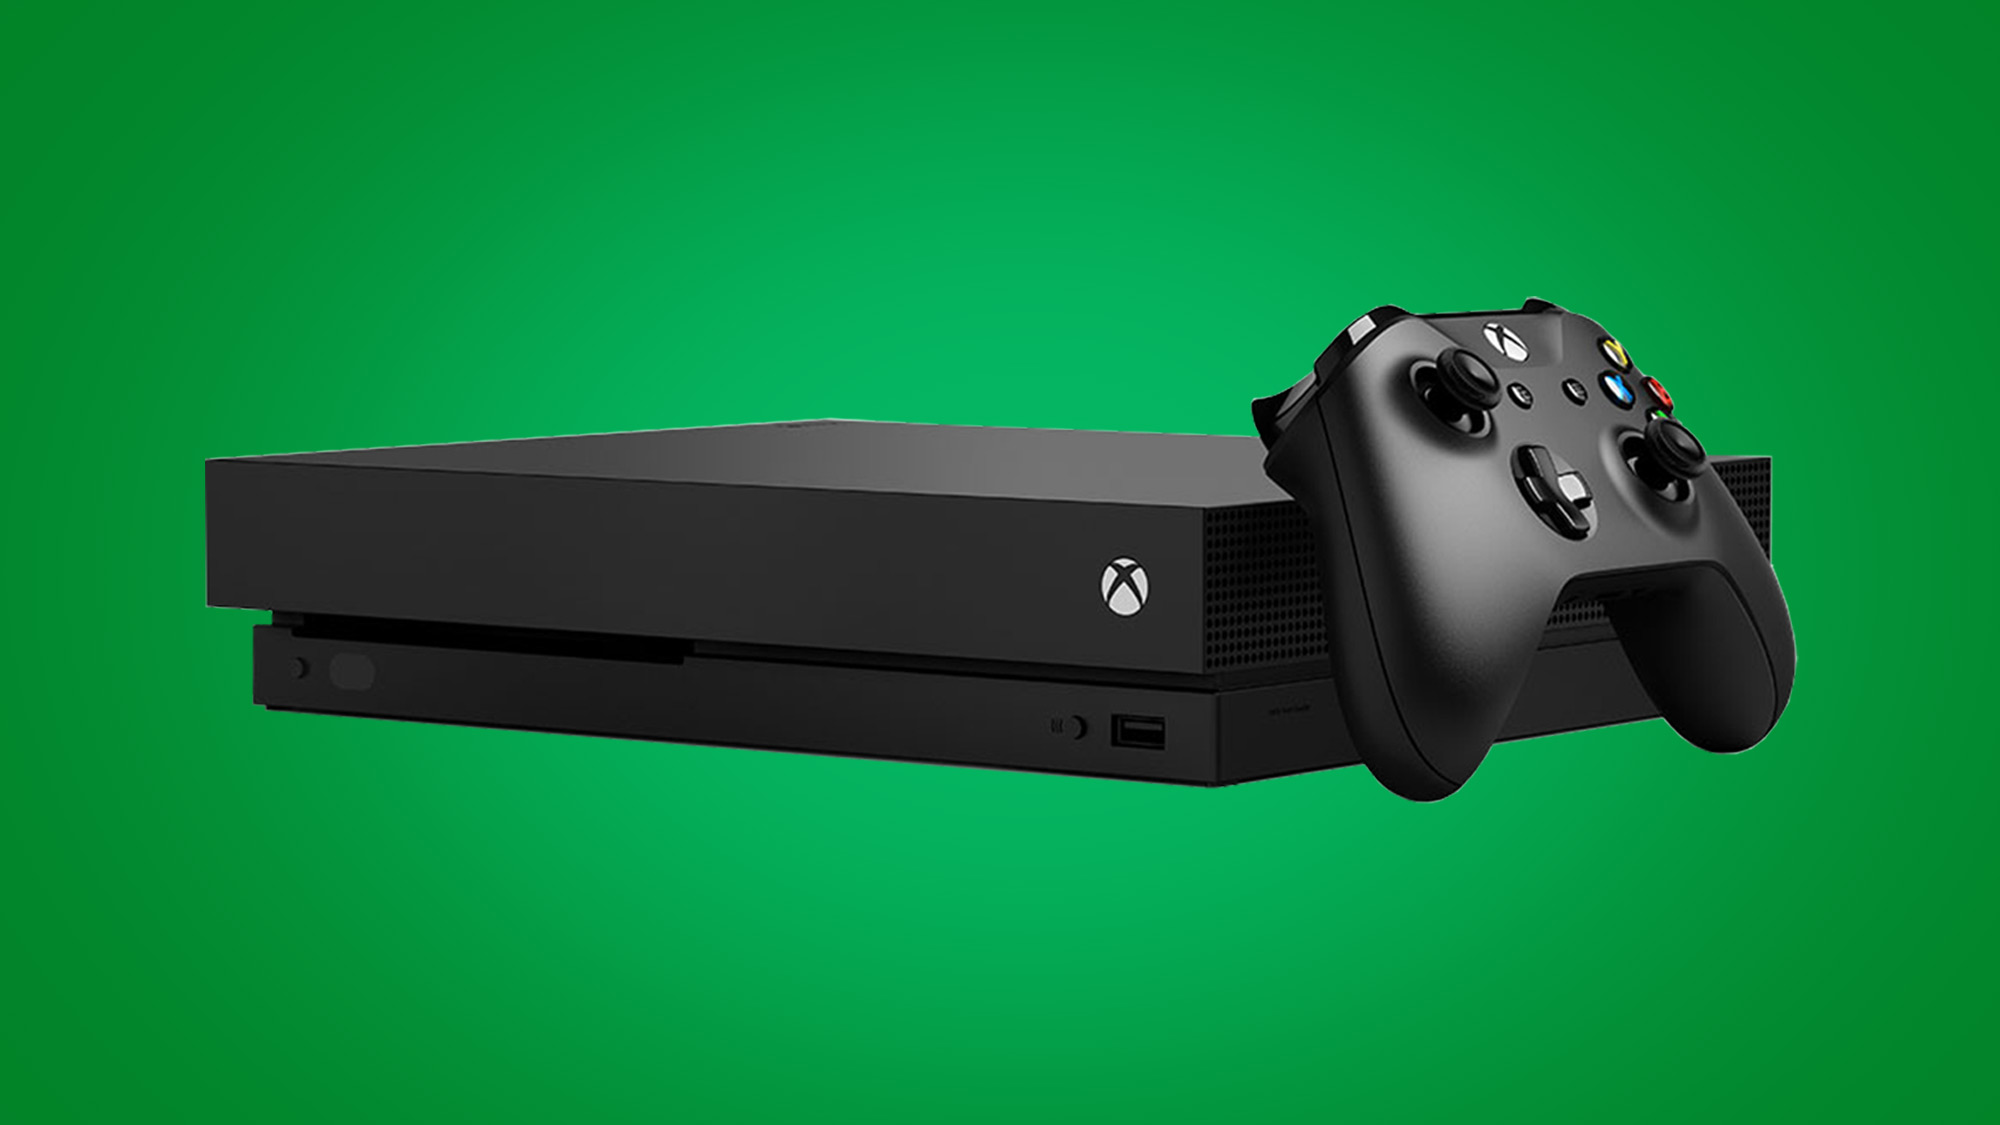 The best Xbox One X prices, bundles and deals for December 2019: where to buy the 4K Xbox